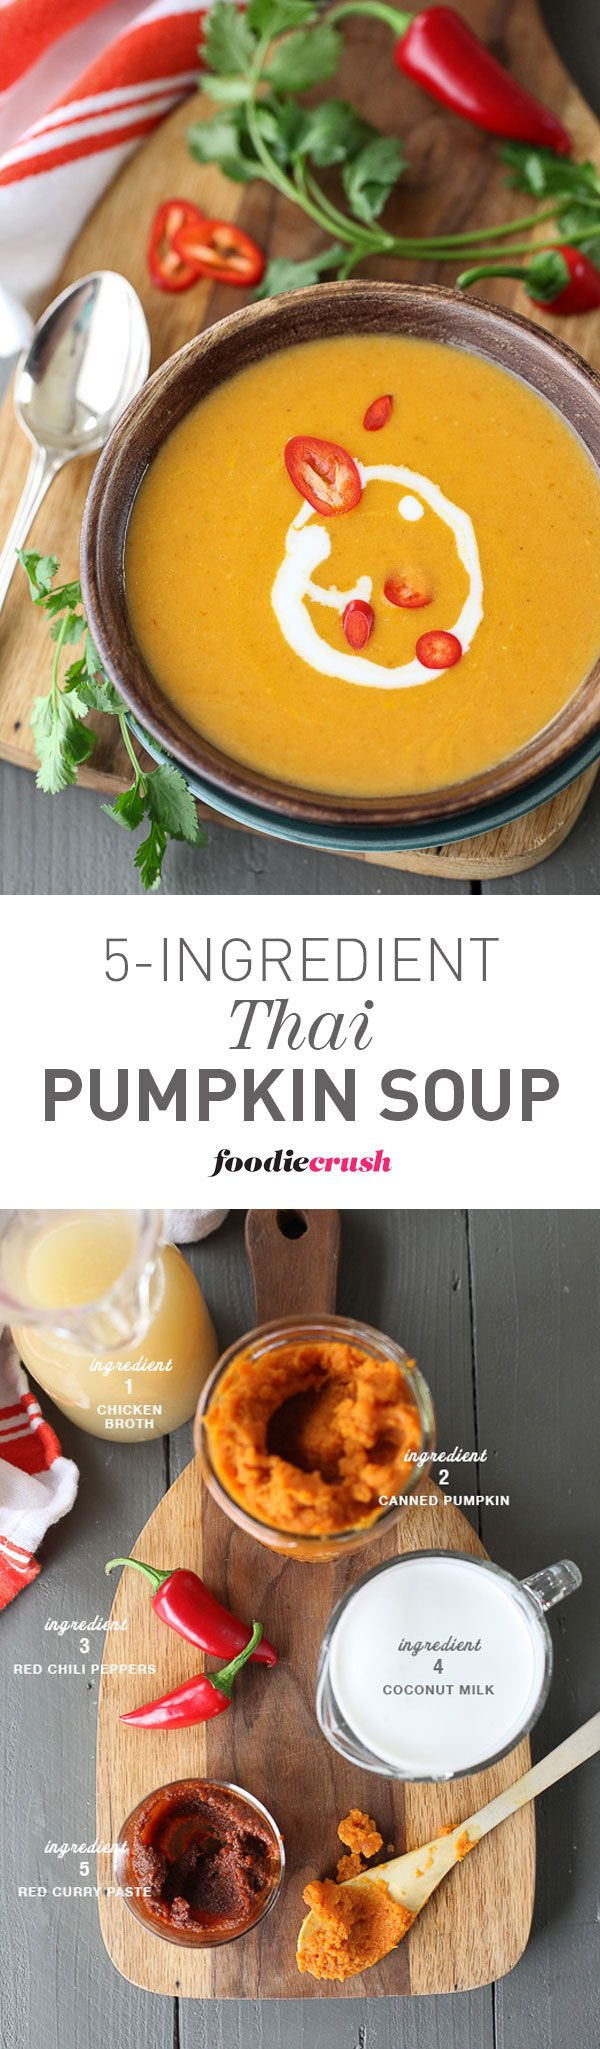 There's no chopping, no sautéeing for this healthy soup. It seriously takes maybe 5 minutes more to make this soup than opening a can of Campbell's. It's that easy | foodiecrush.com